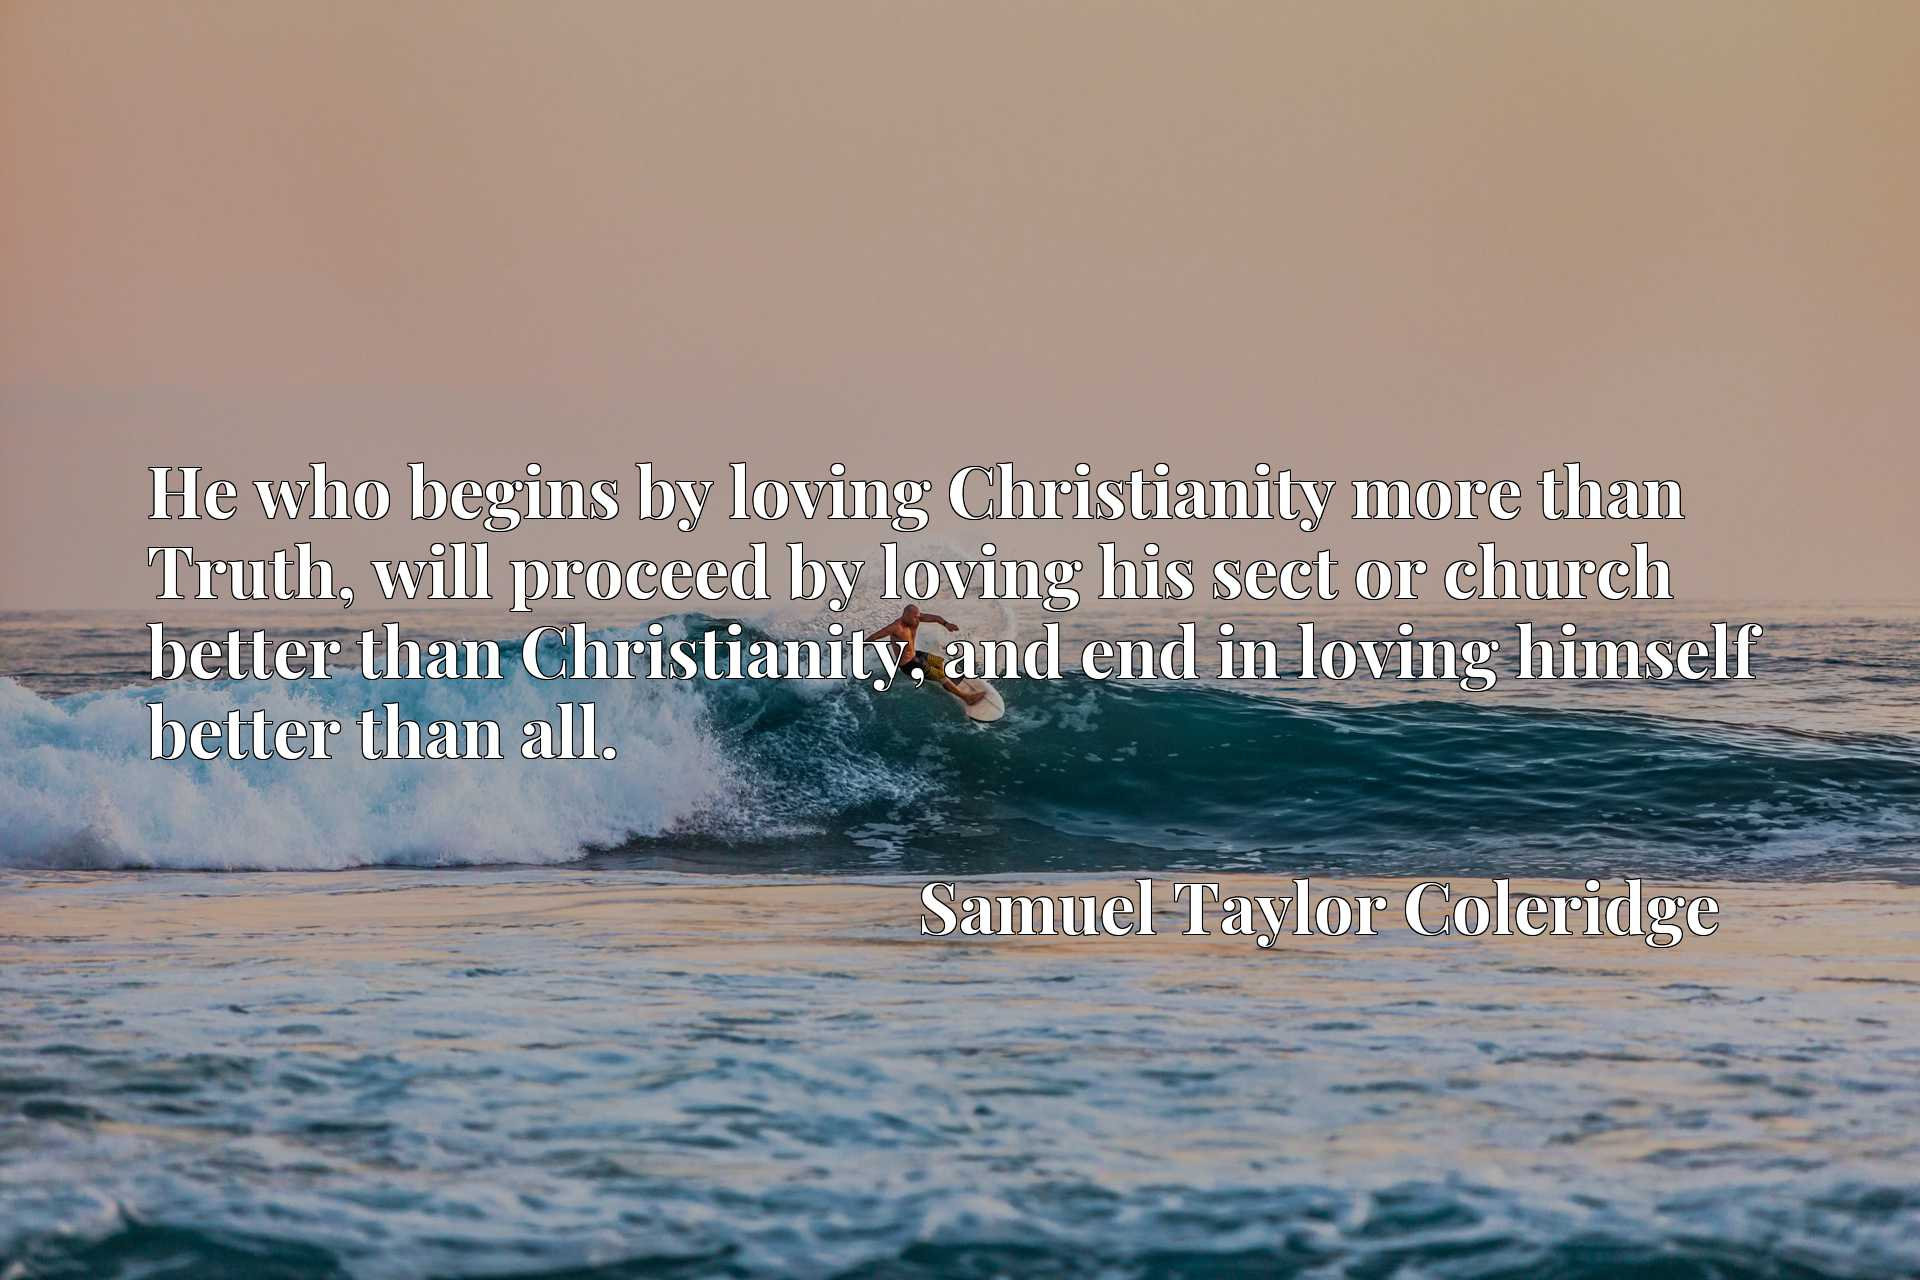 He who begins by loving Christianity more than Truth, will proceed by loving his sect or church better than Christianity, and end in loving himself better than all.